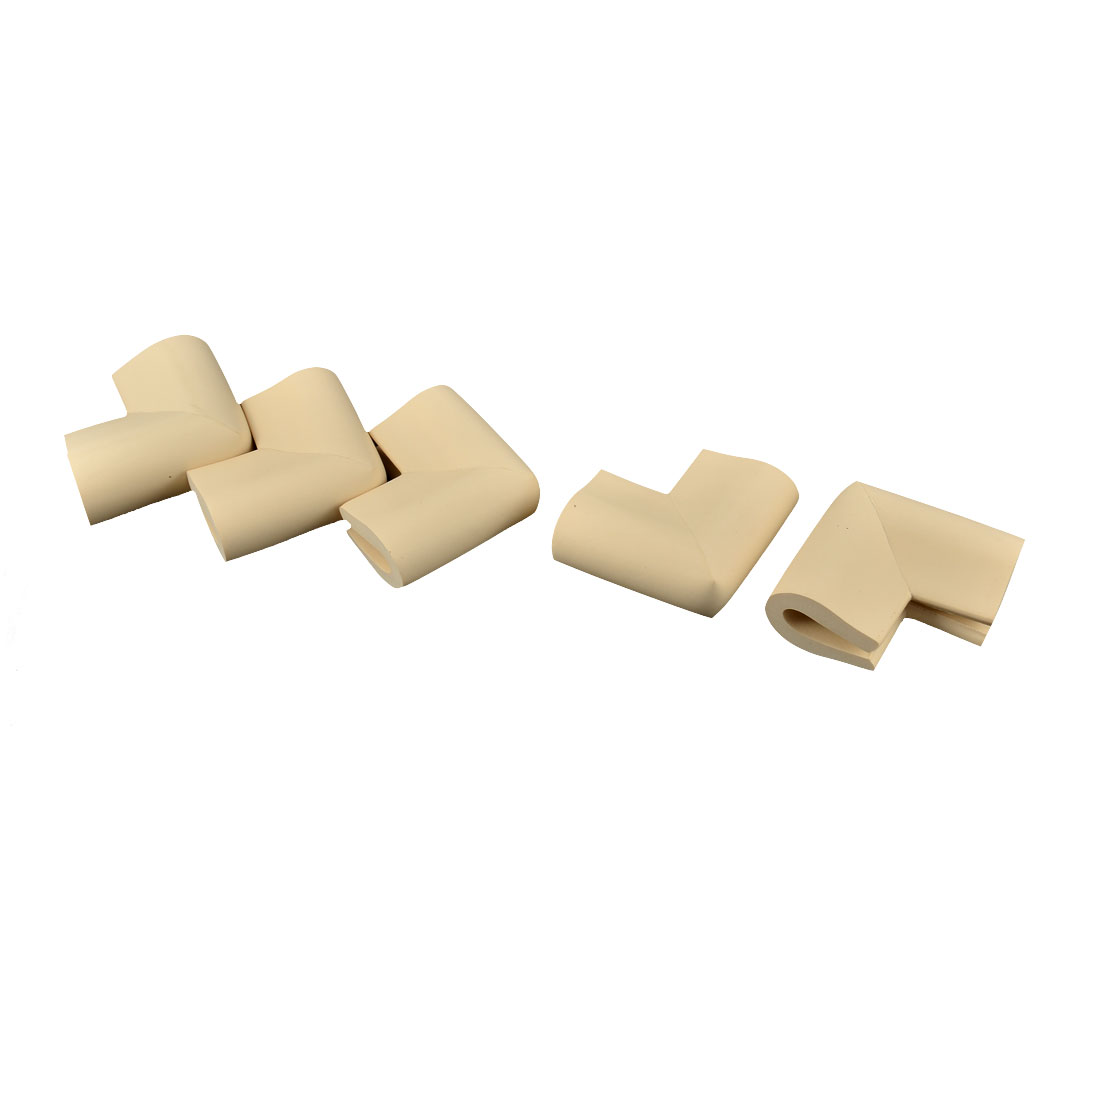 Home Safety Furniture Table Corner Edge Guard Protector Cushion Beige 5 Pcs